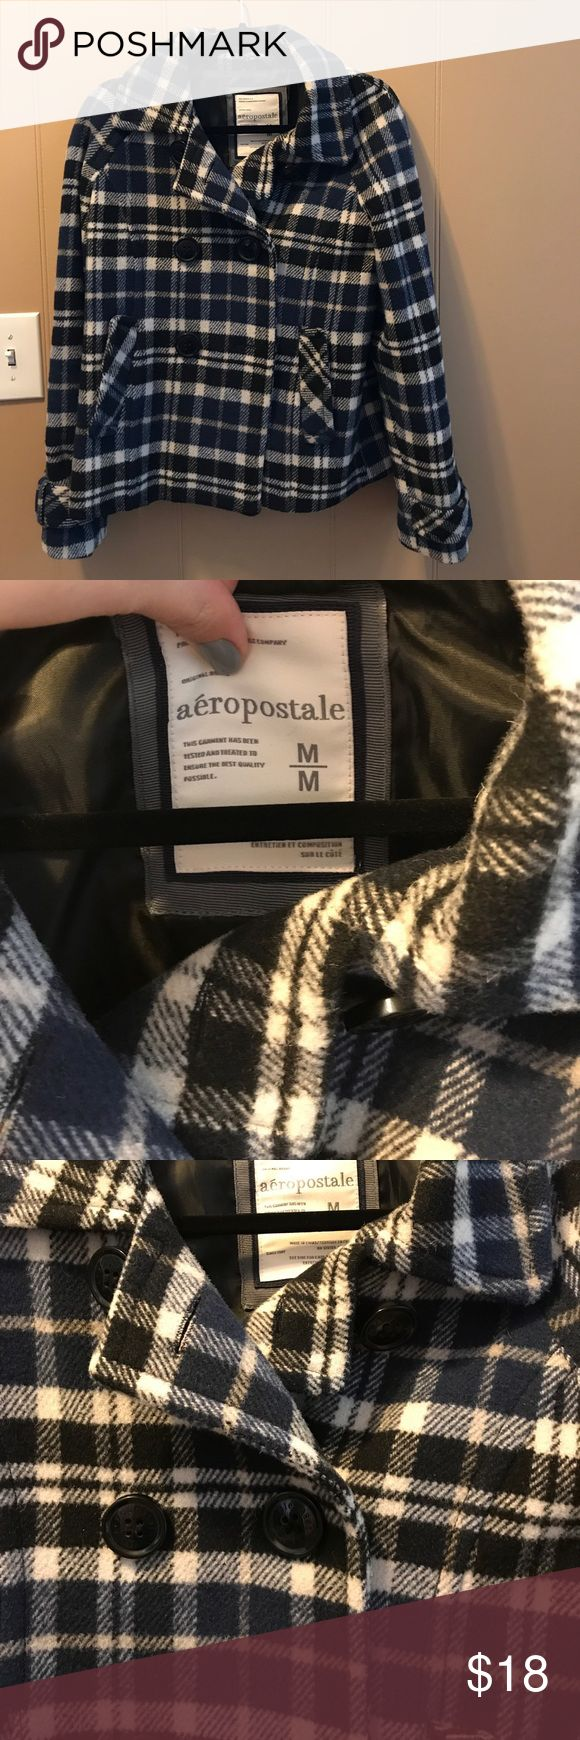 Classy blue Plaid perfect for fall peacoat Aeropostale blue and white plaid peacoat. Some black accents.  One button has come loose but nothing a quick couple stitches can't fix(see last pic) price reflects this.  Size medium. Aeropostale Jackets & Coats Pea Coats